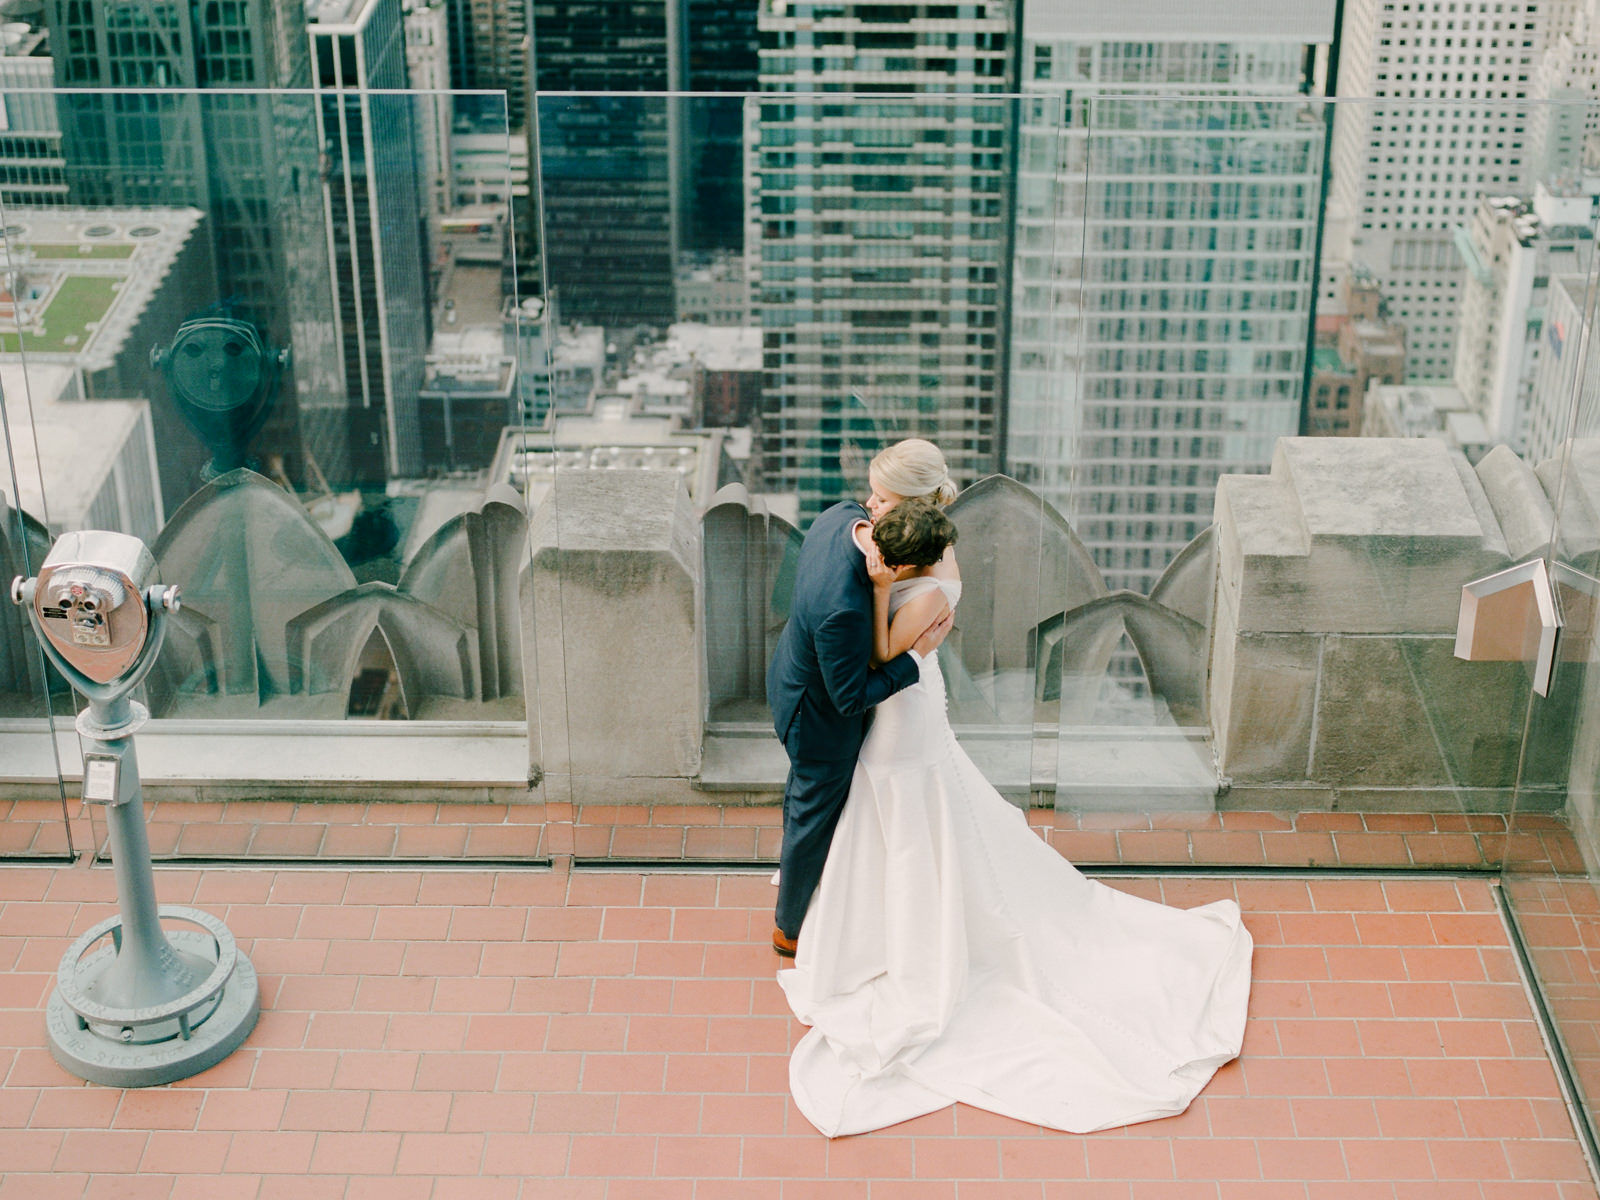 Intimate-NYC_wedding_ by Tanya Isaeva-166.jpg